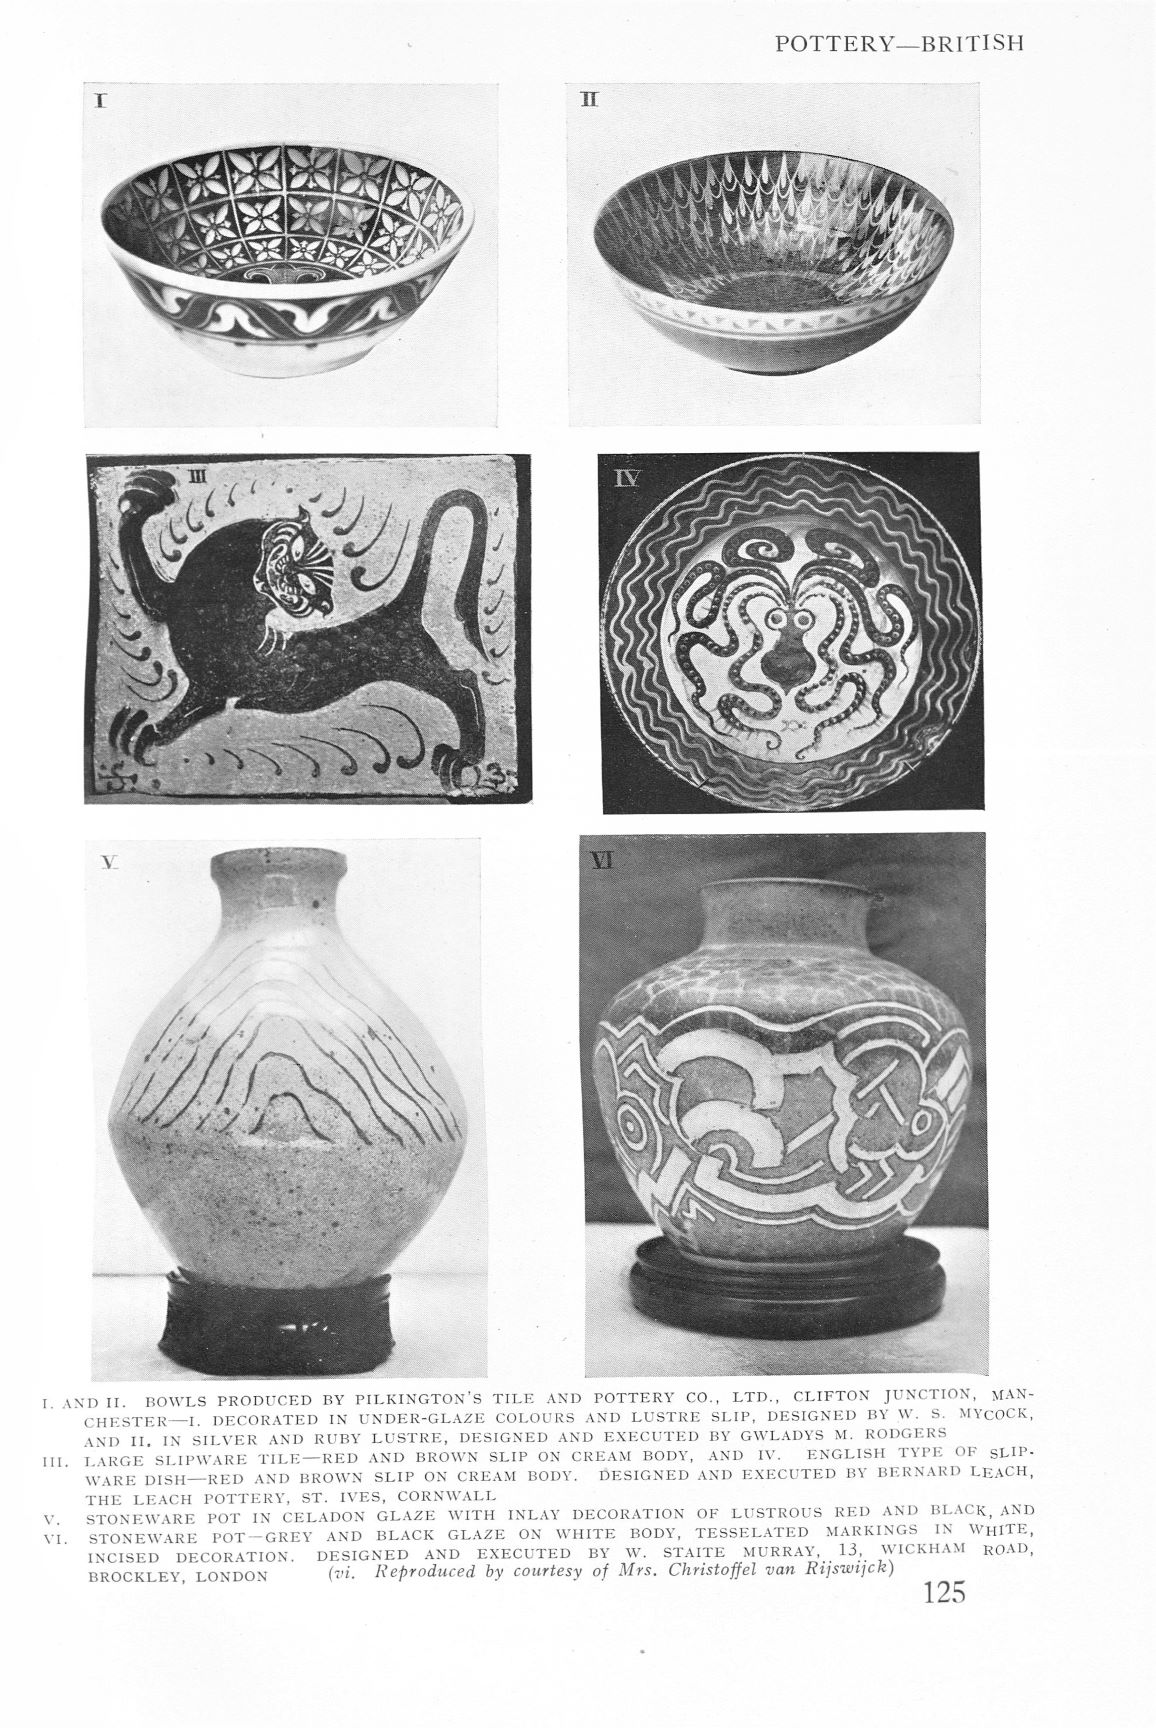 00011-scan_2021-06-29_15-40-03r pottery1